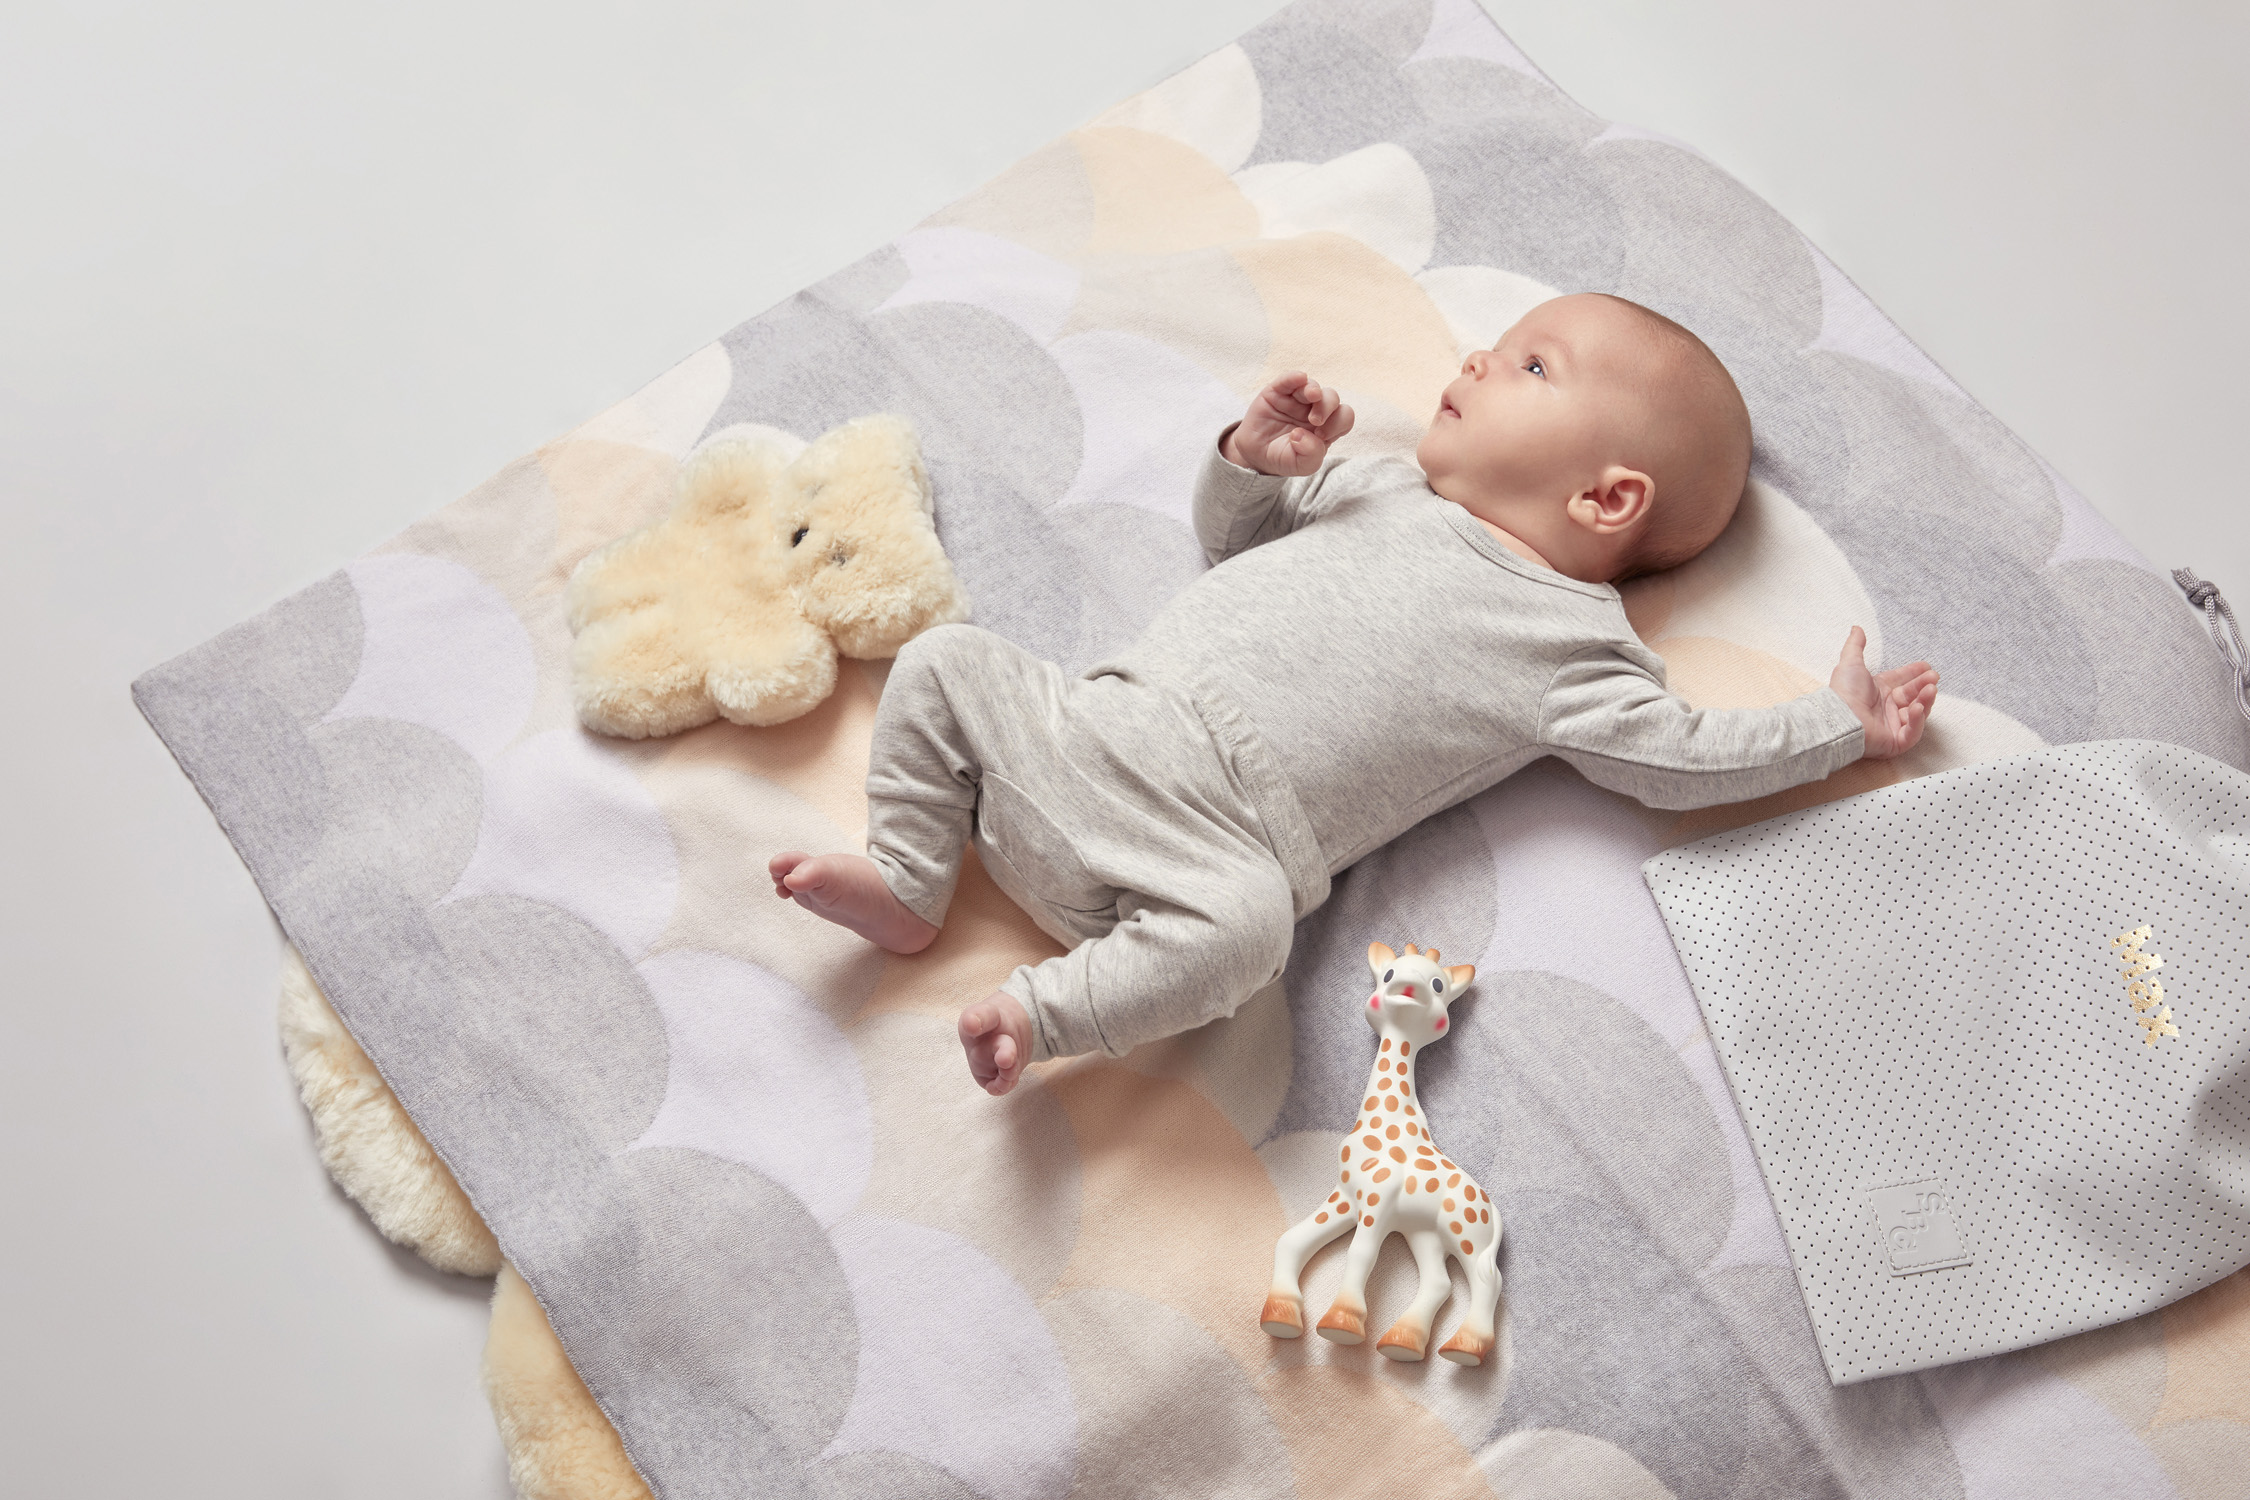 Soul Baby Gifts - Baby Max and Sophie the Giraffe